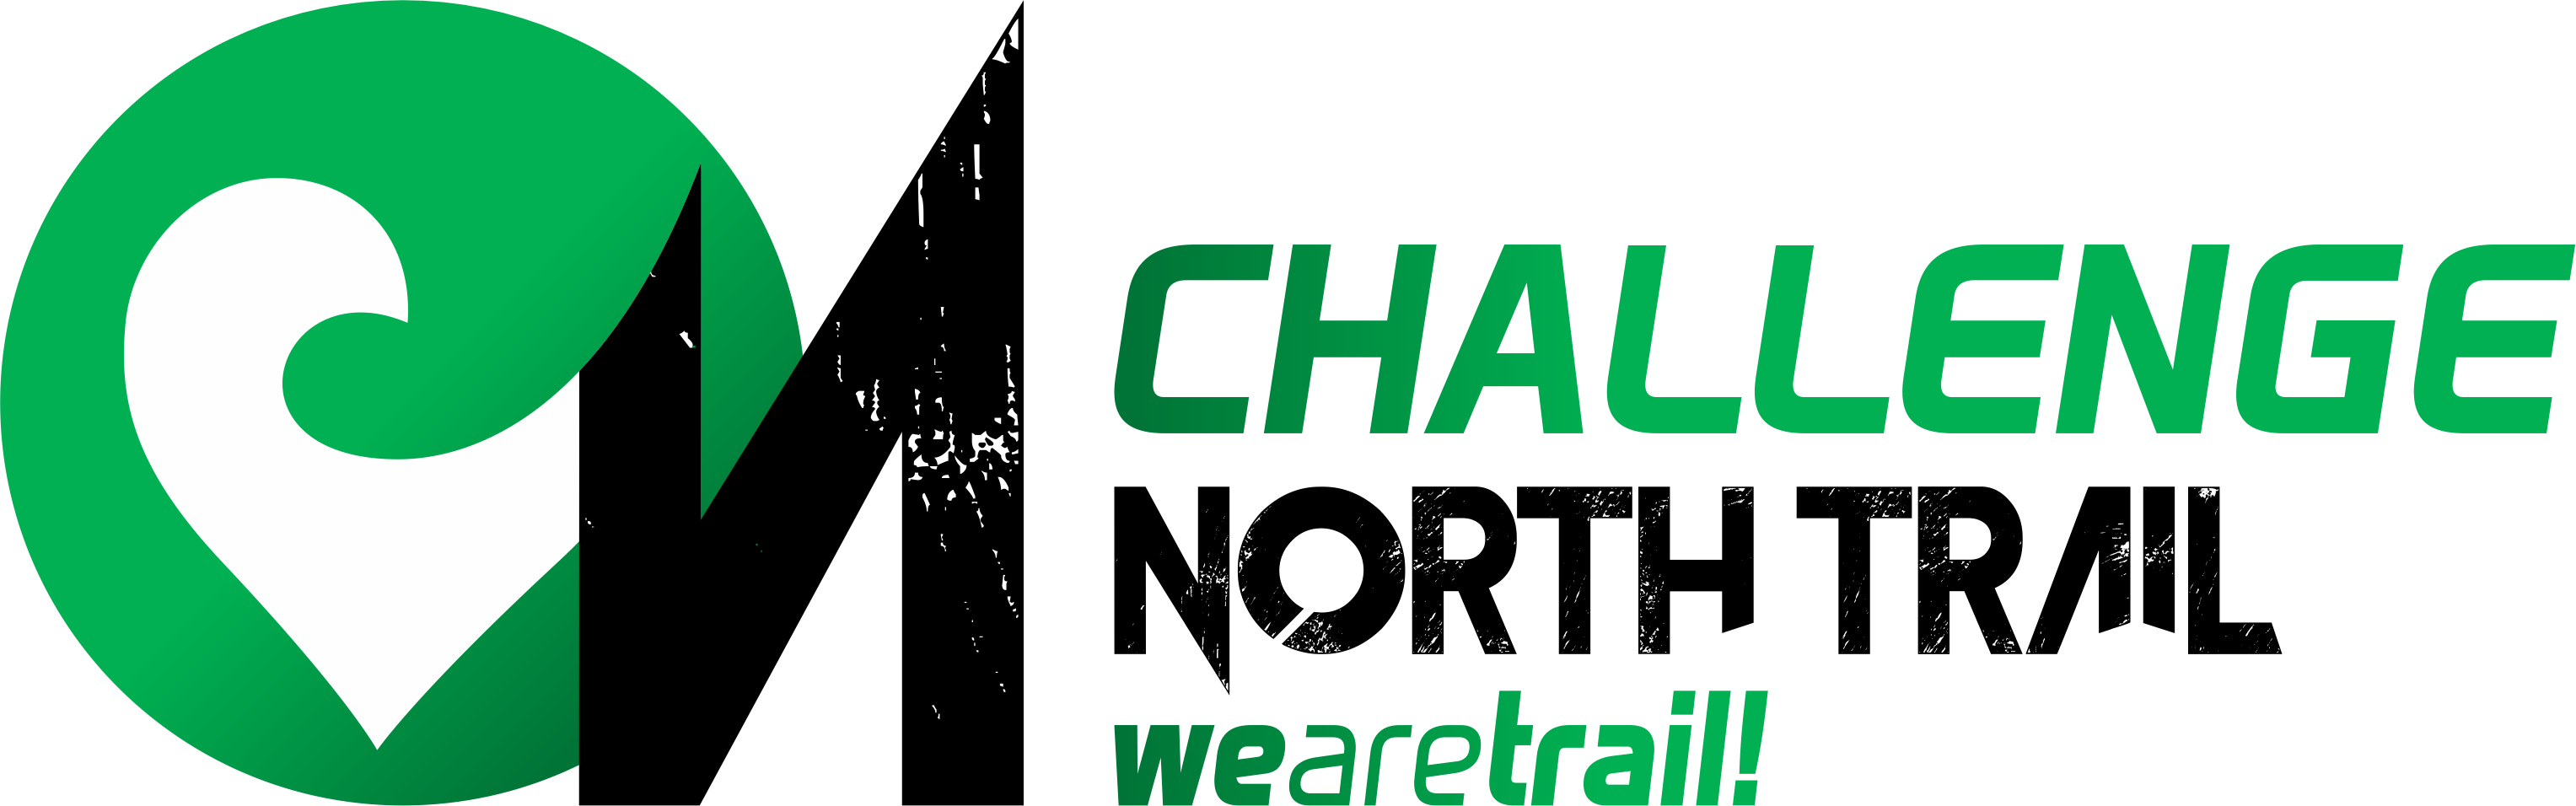 logo-challenge-north-trail